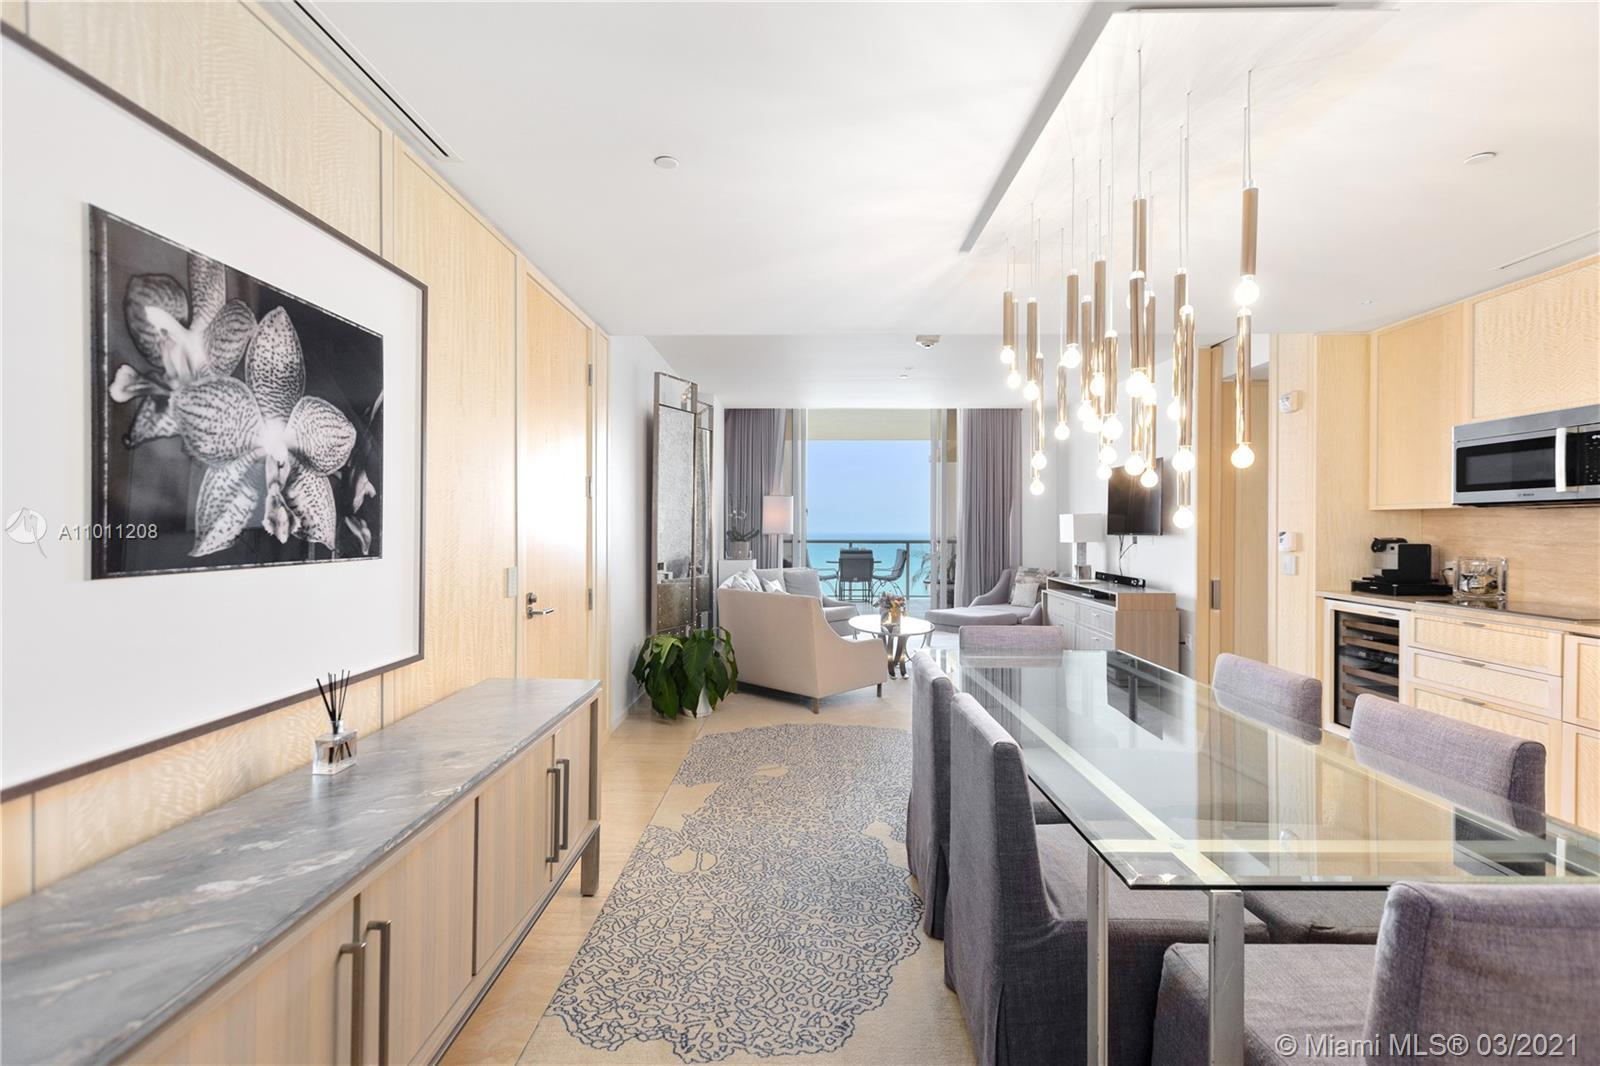 """This is a unique 2103 sqft """"Royal Suite"""" 2beds/3baths in the most exclusive 5 stars Hotel """" The St R"""